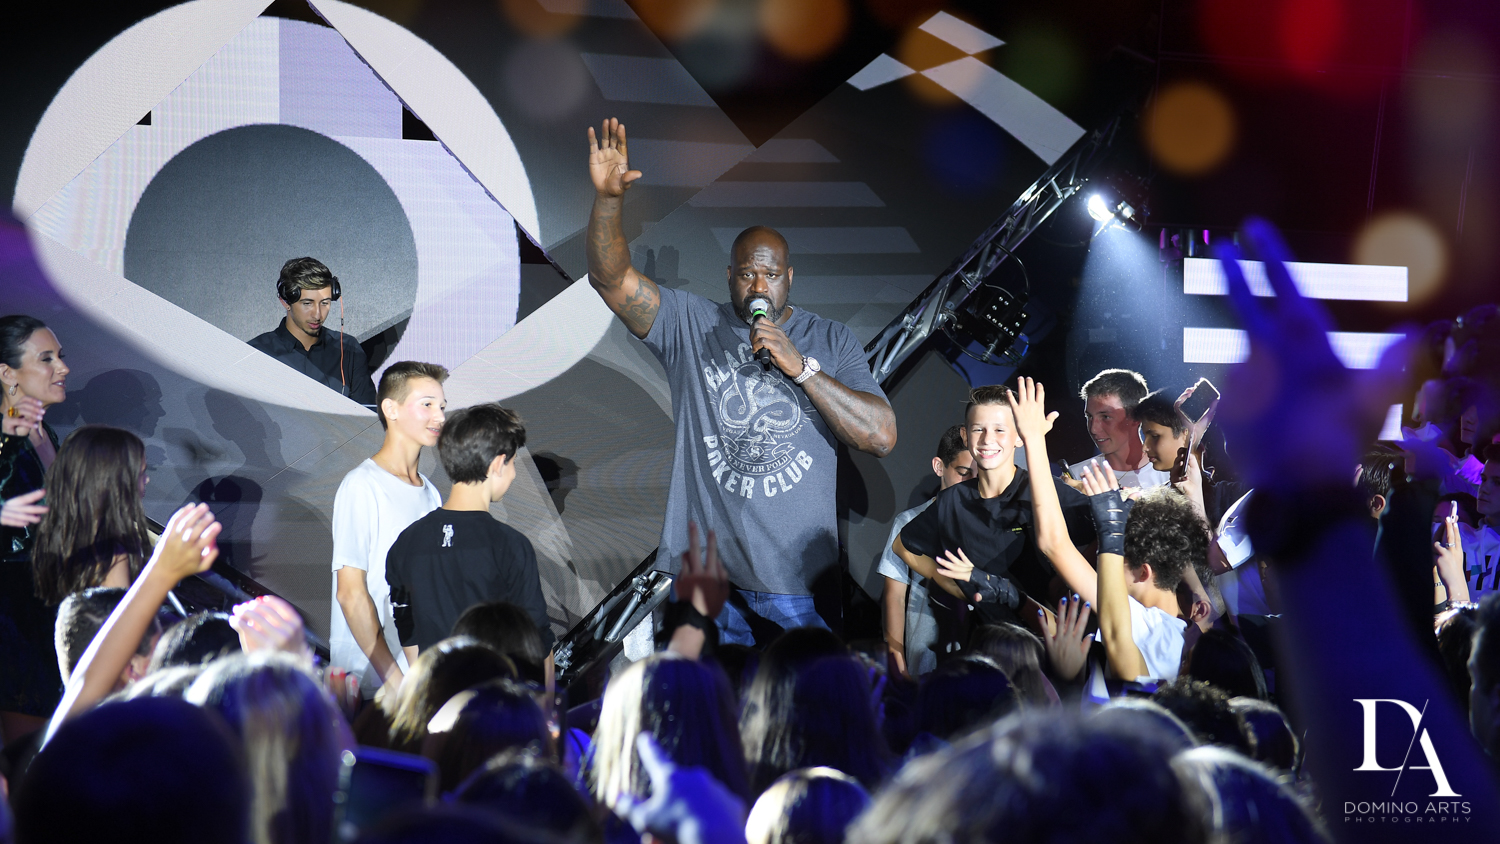 Urban Graffiti BNai Mitzvah with celebrity Shaq at Xtreme Action Park by Domino Arts Photography